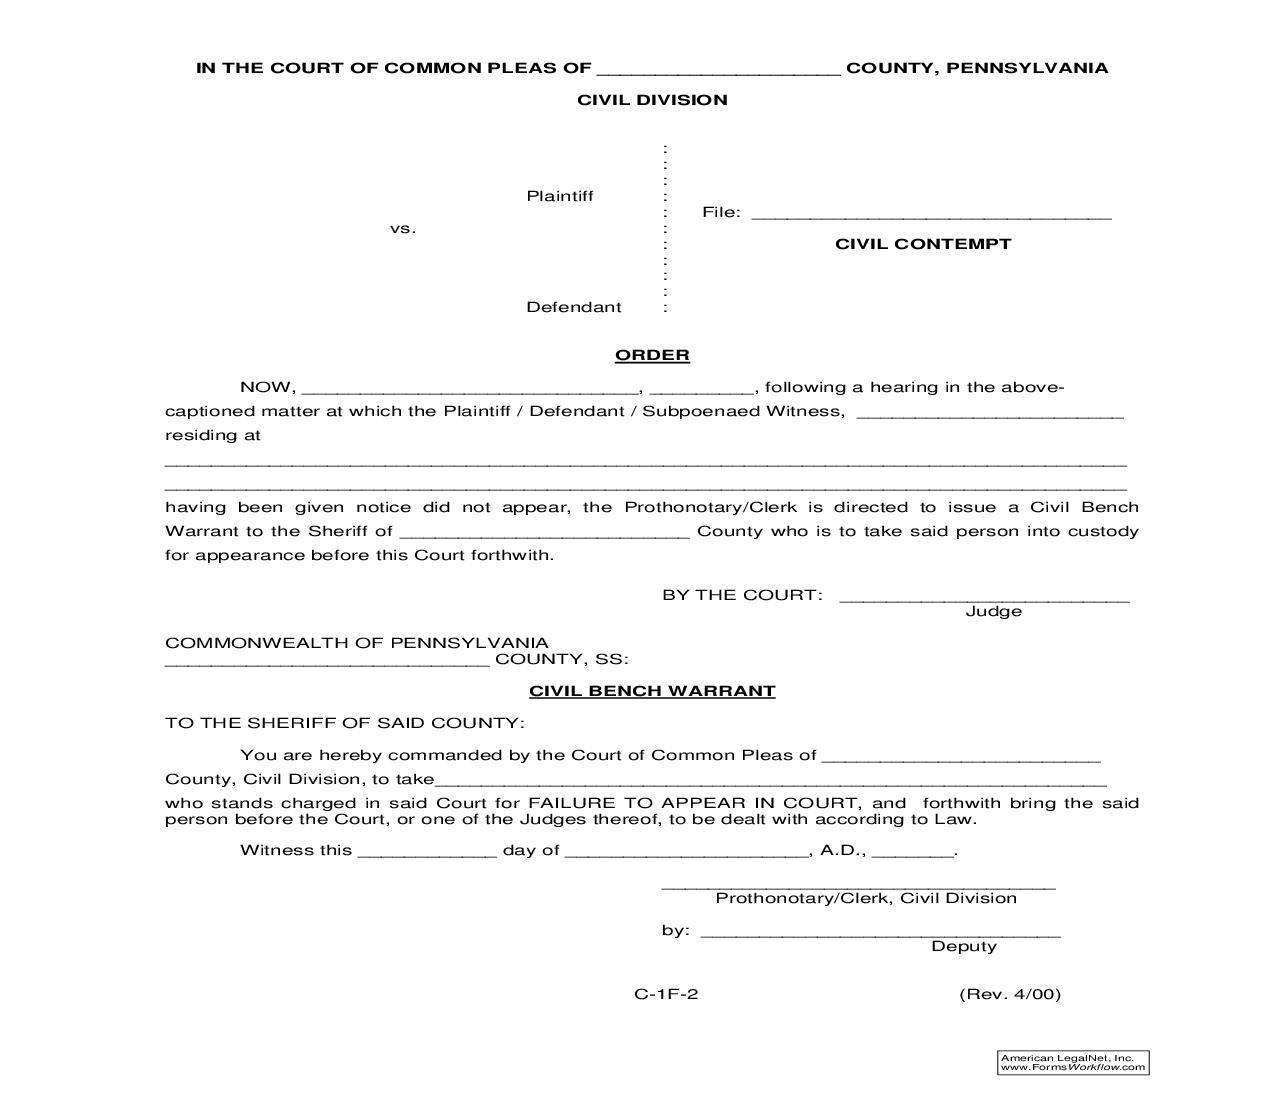 Order (Civil Contempt) {C-1F-2} | Pdf Fpdf Doc Docx | Pennsylvania